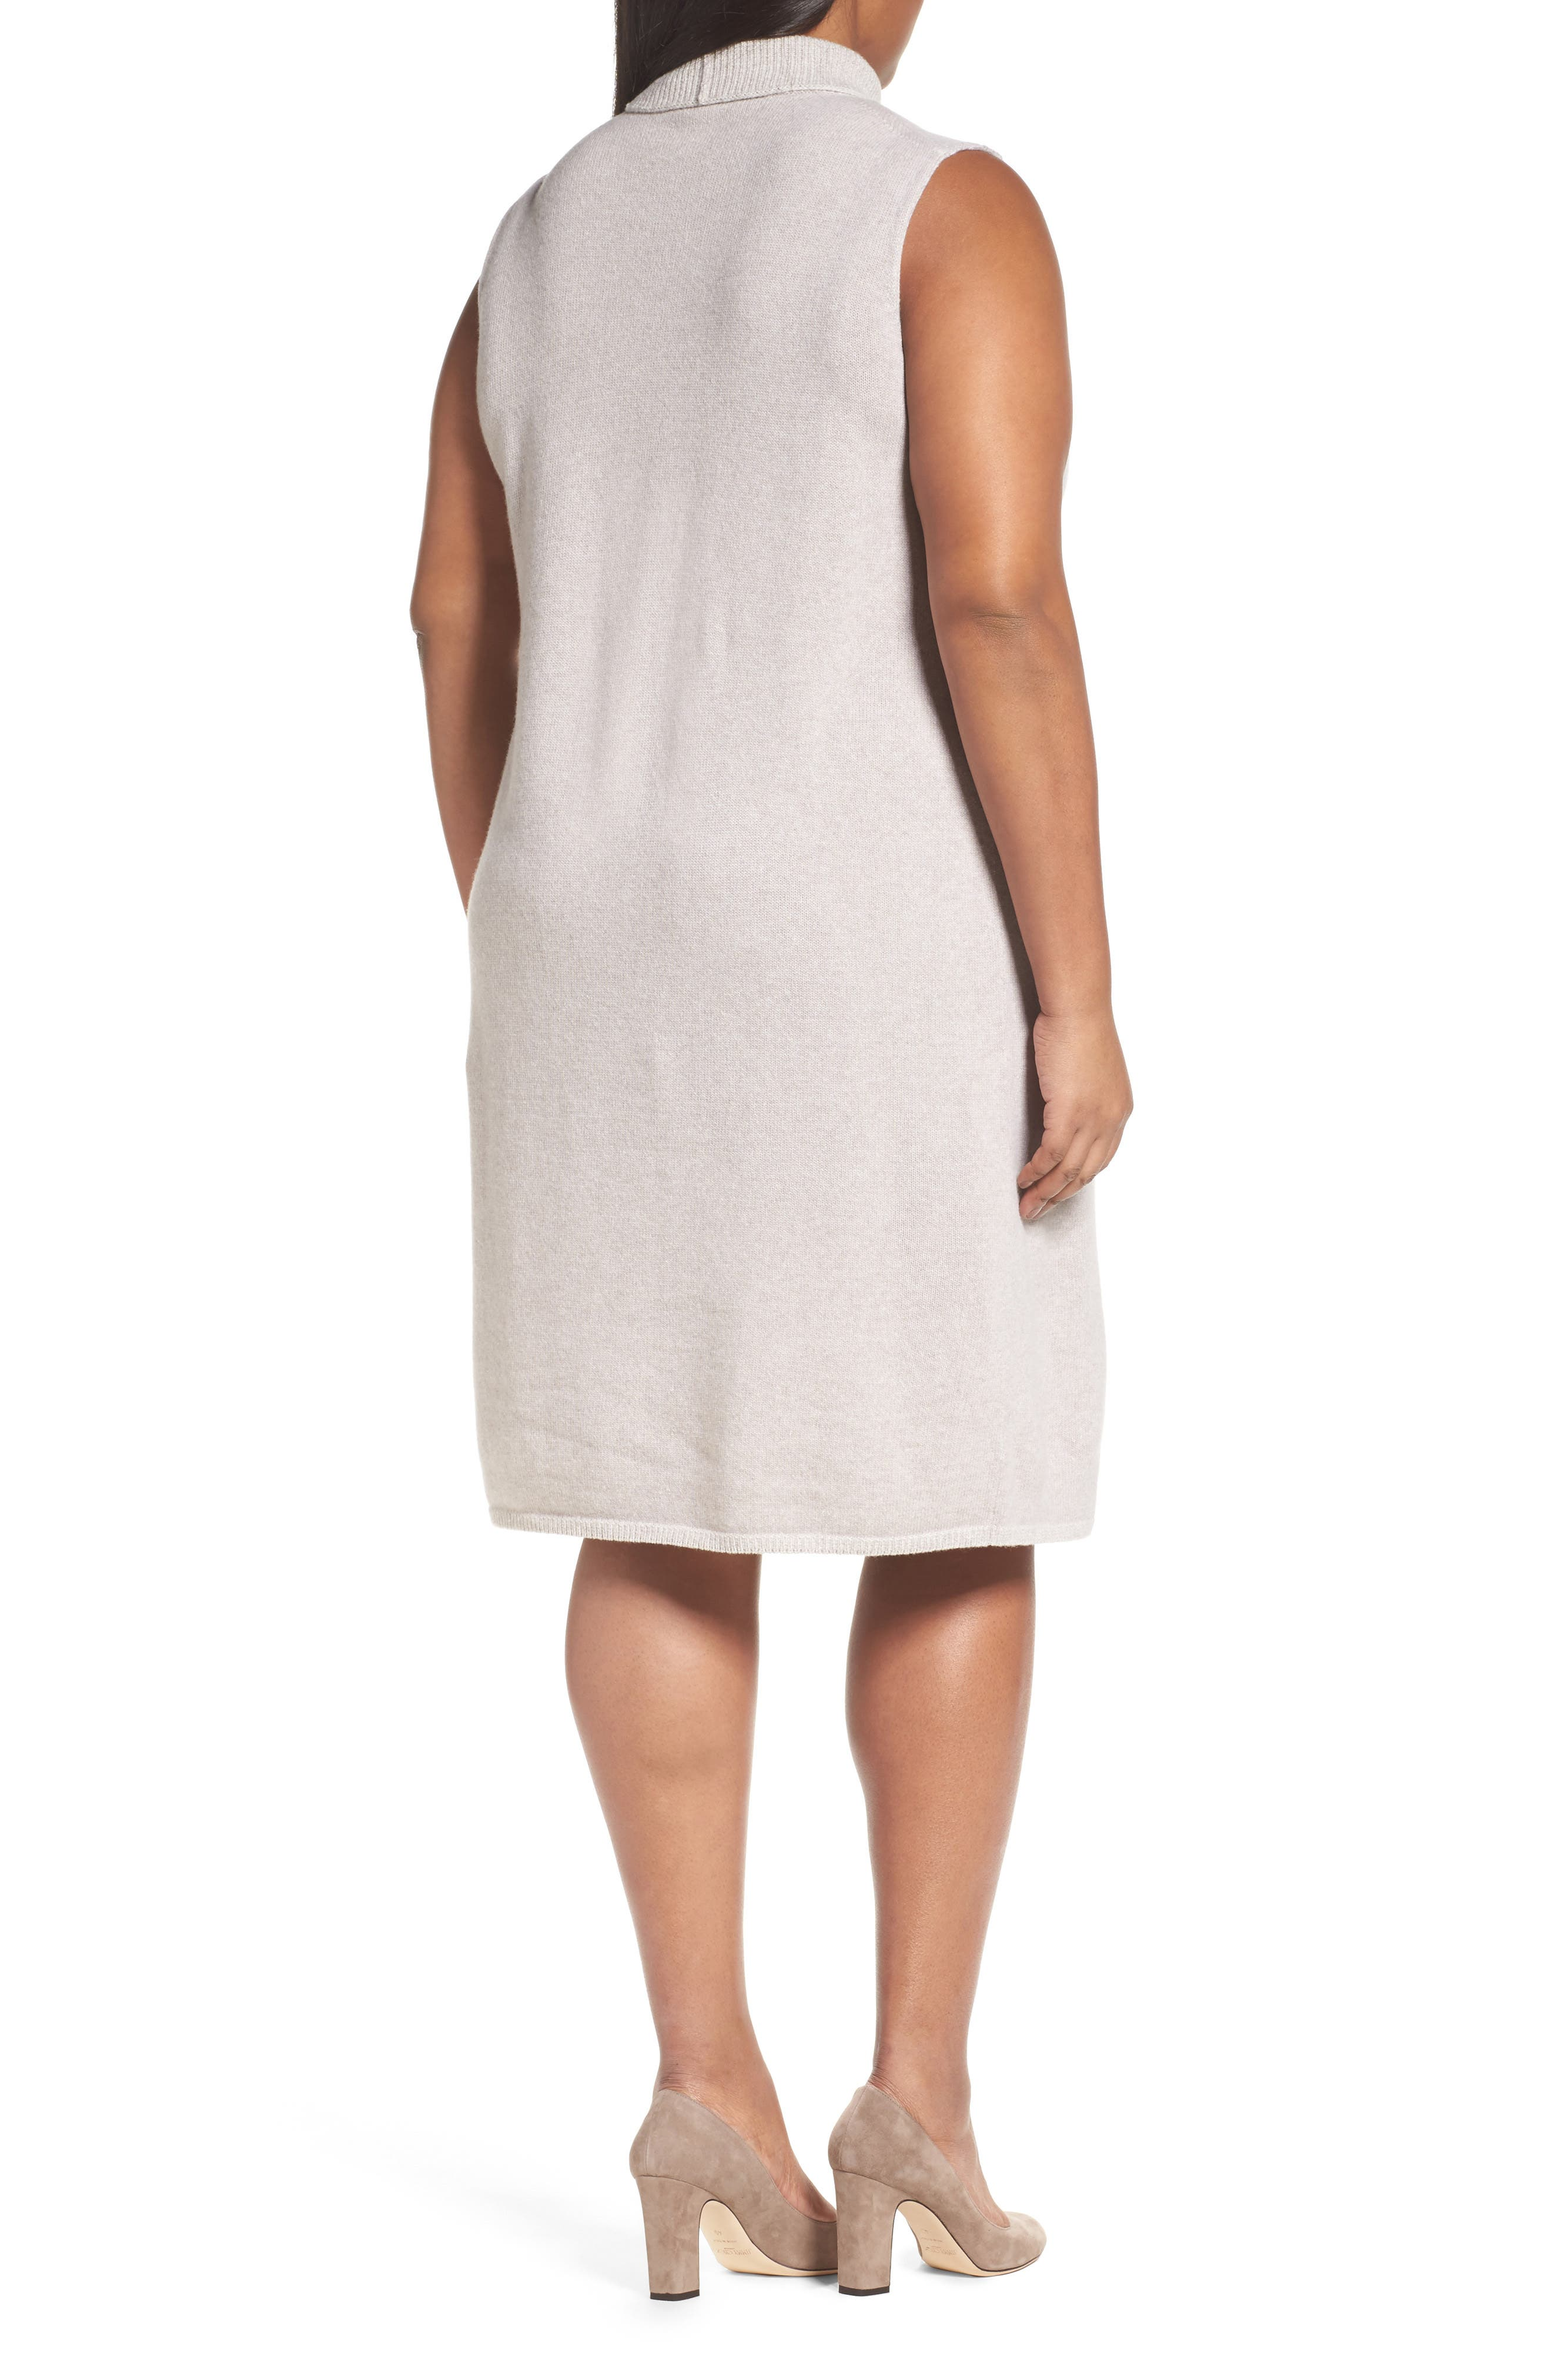 Vanise Merino Wool & Cashmere Sweater Dress,                             Alternate thumbnail 2, color,                             264